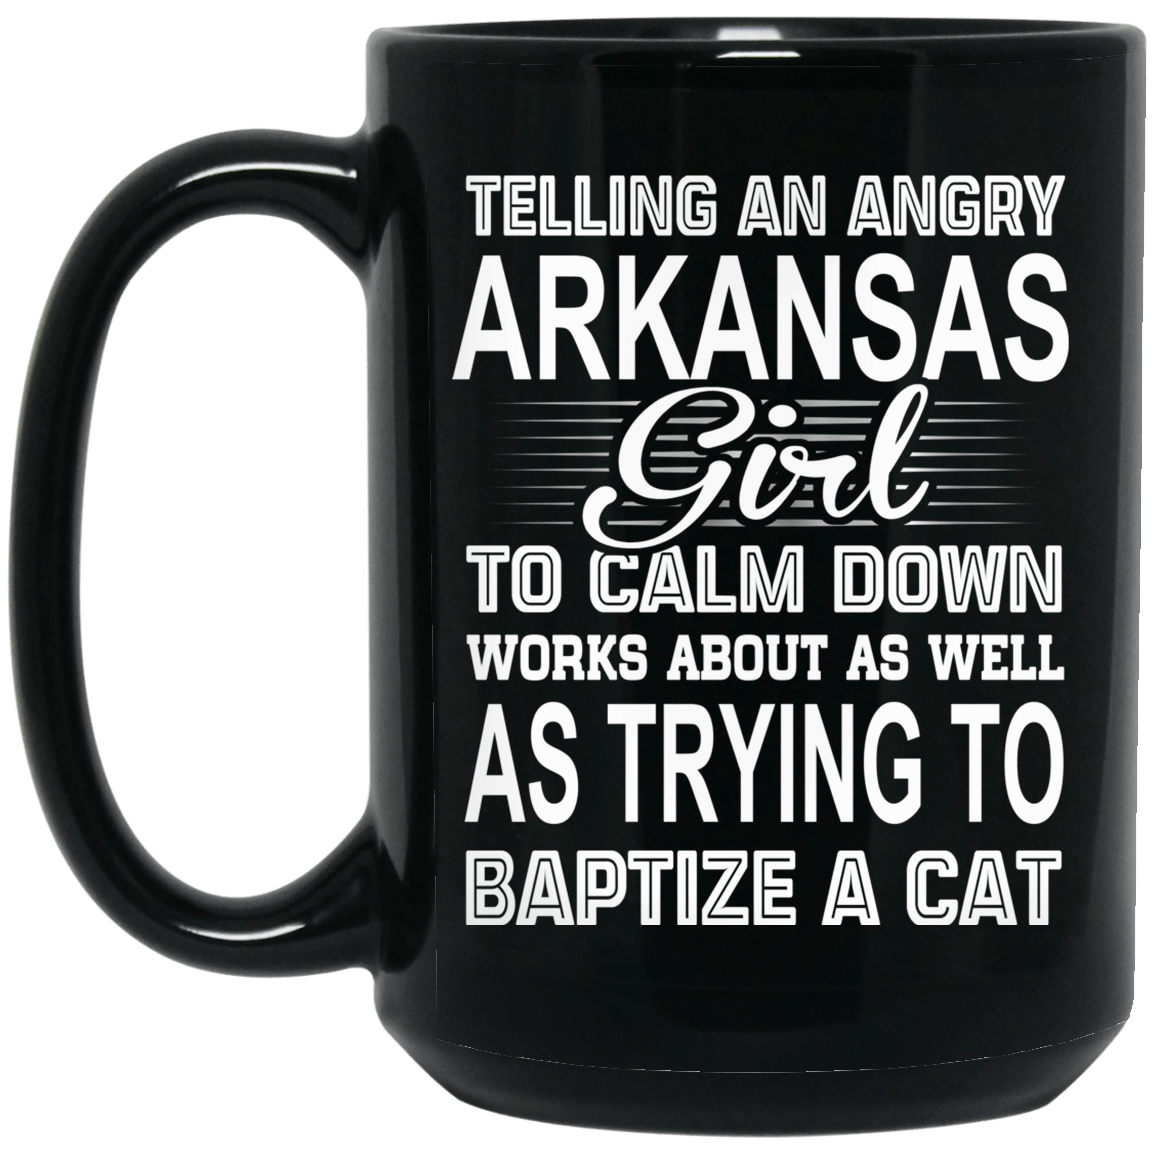 Telling An Angry Arkansas Girl To Calm Down Works About As Well As Trying To Baptize A Cat Mug 1066-10182-76151925-49311 - Tee Ript